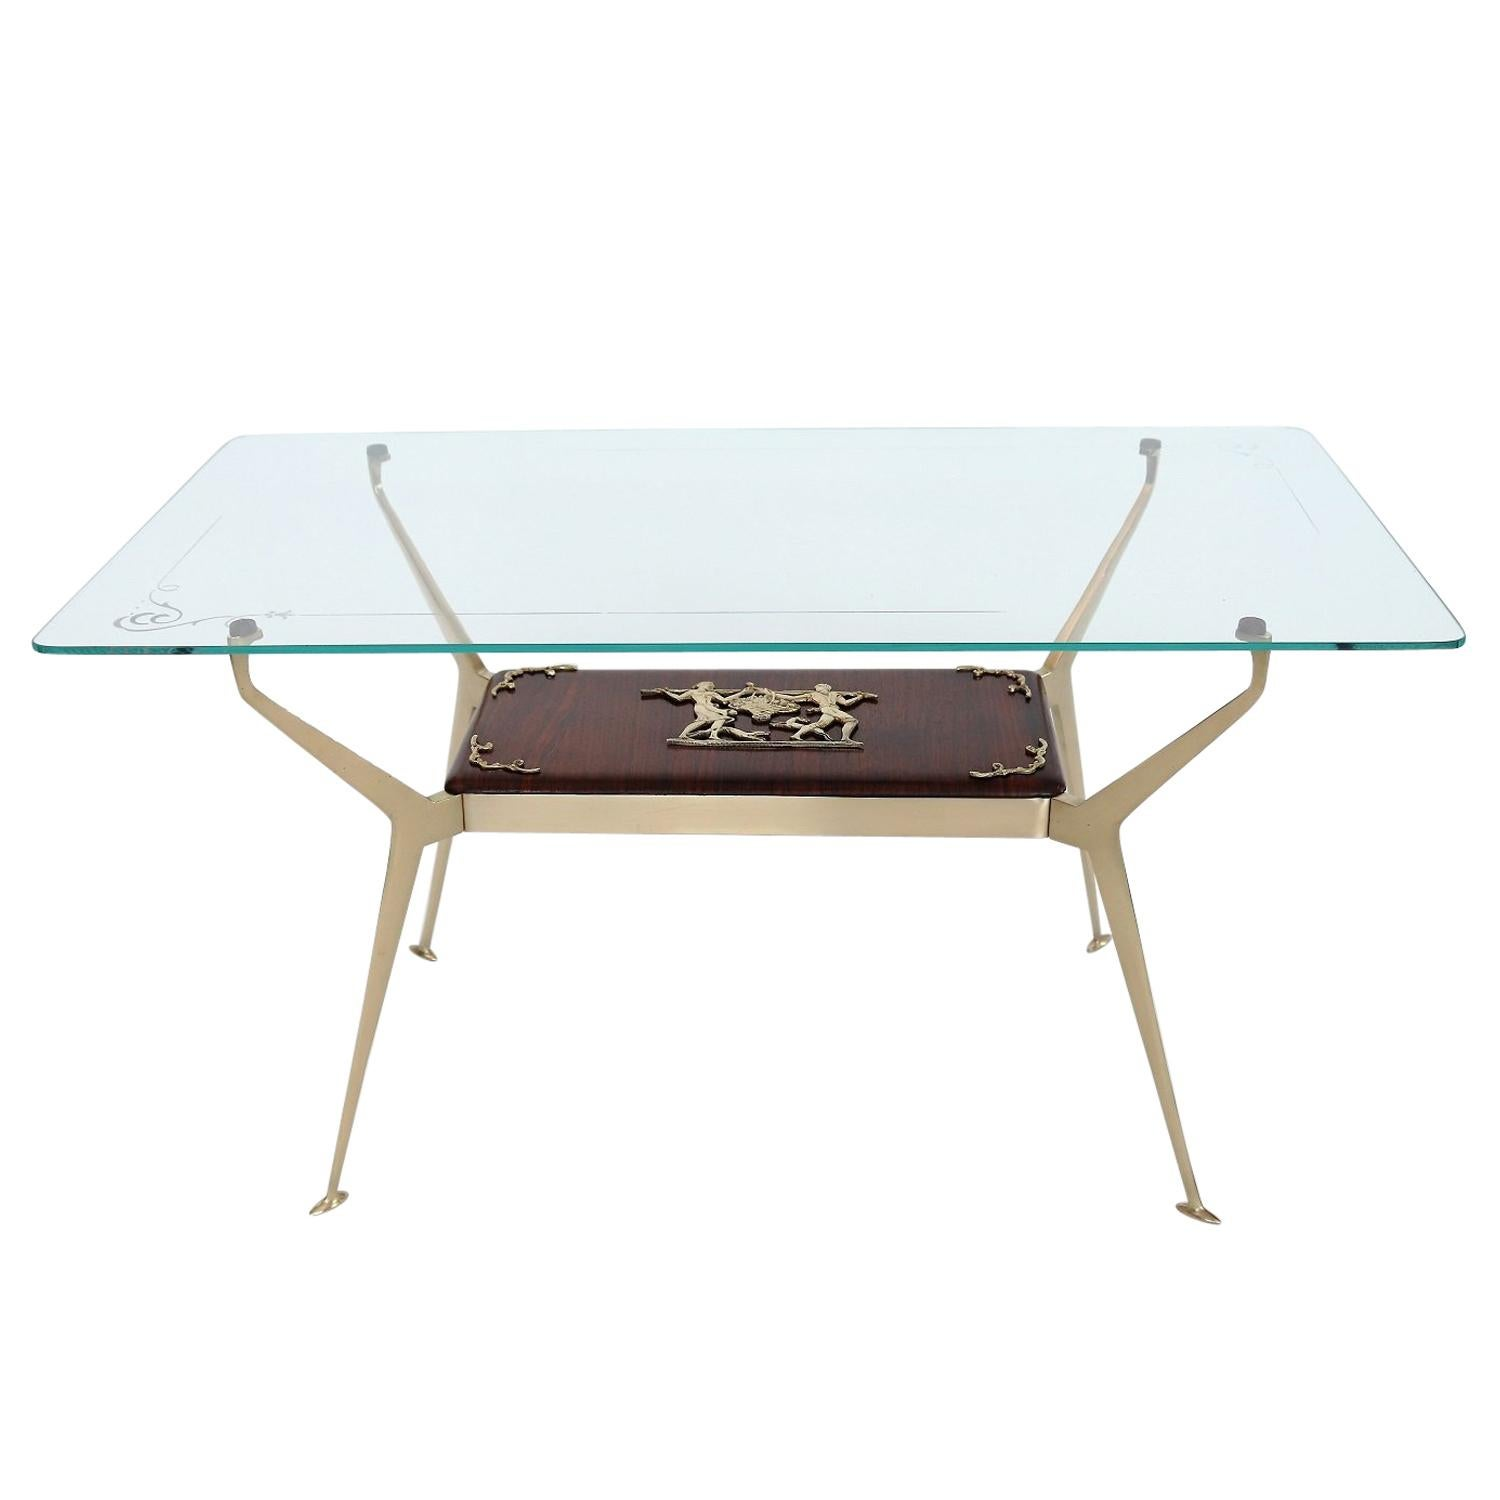 Italian Midcentury Coffee Table or Side Table with Brass and Mahogany, 1950s